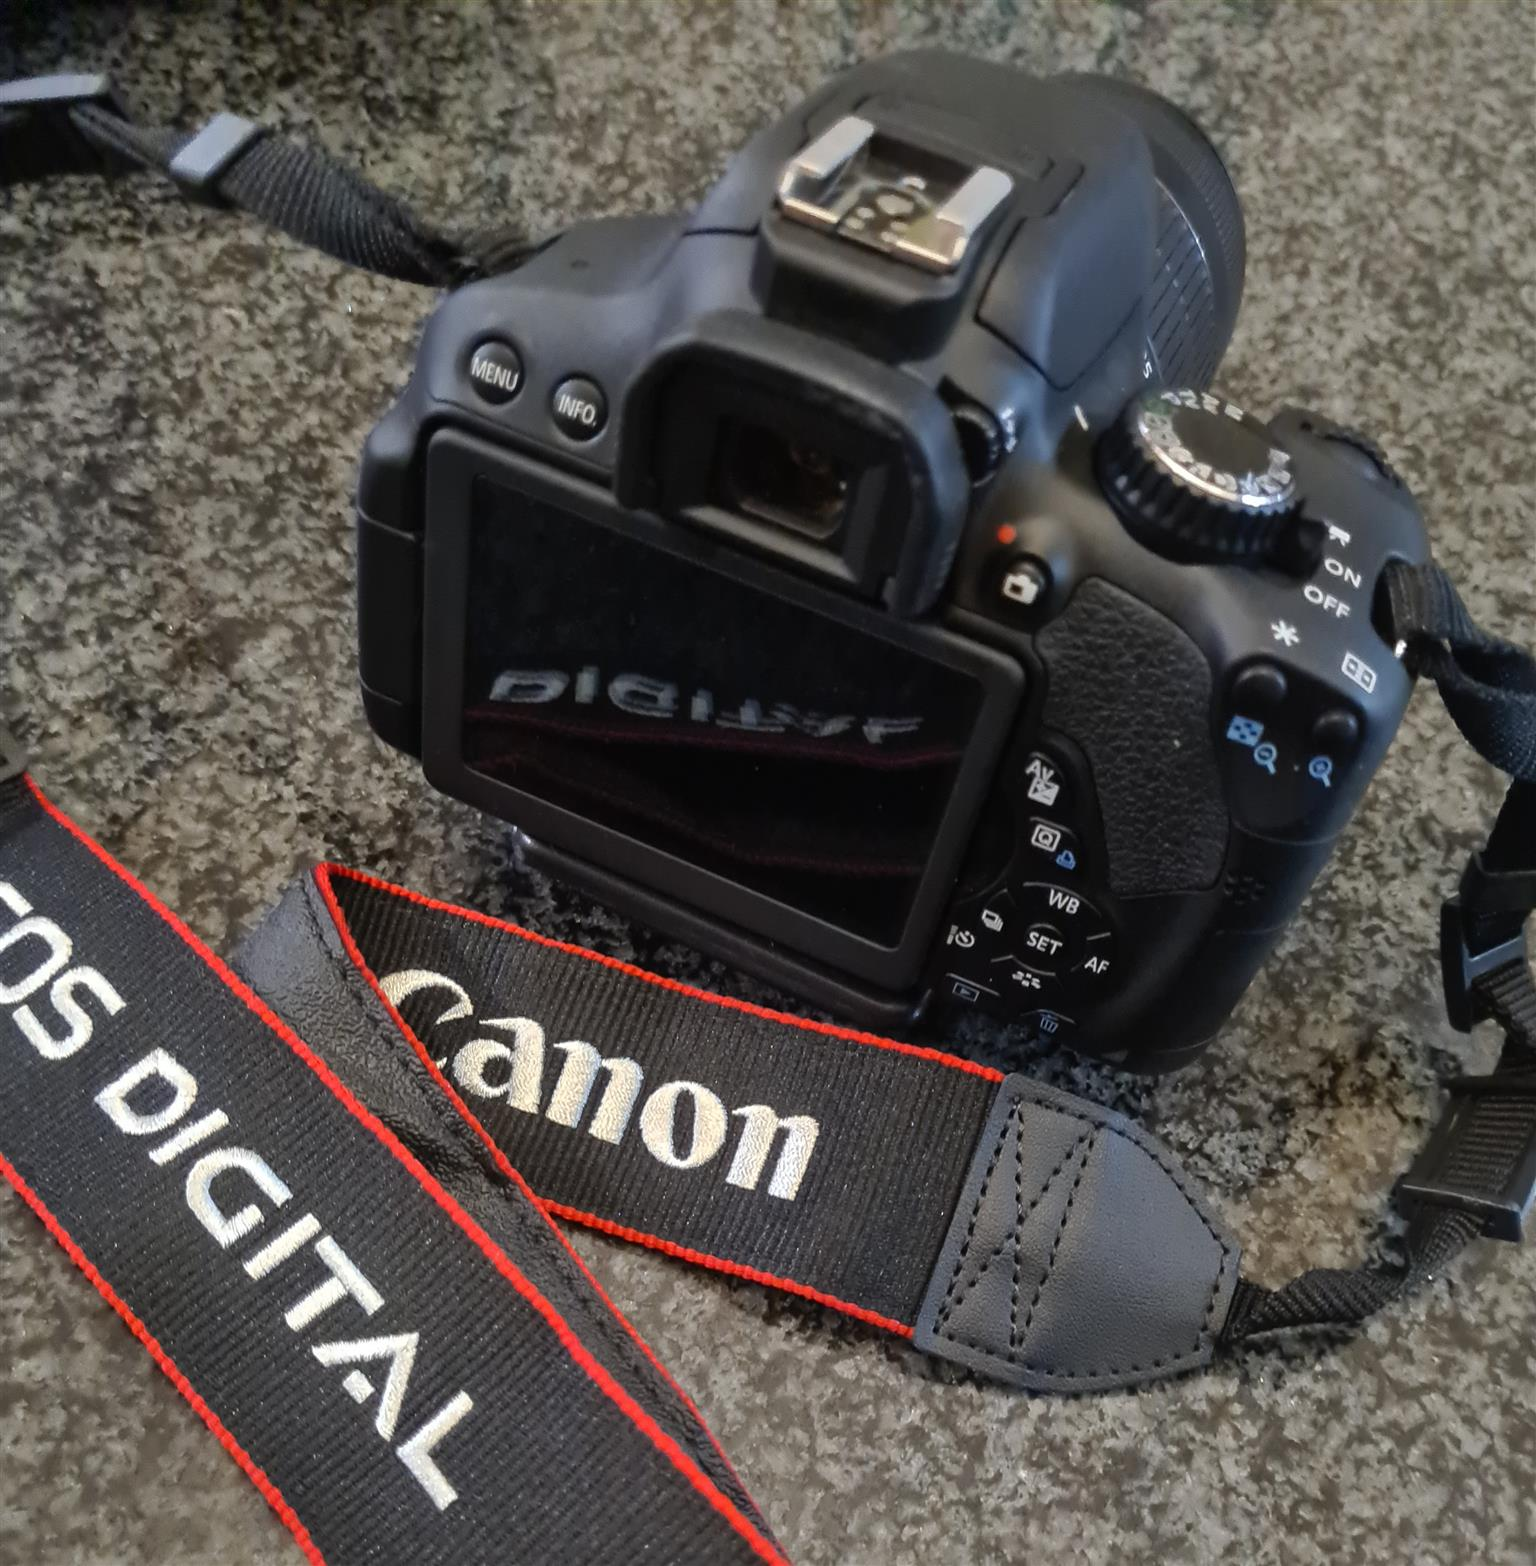 Canon EOS 650D and accessories